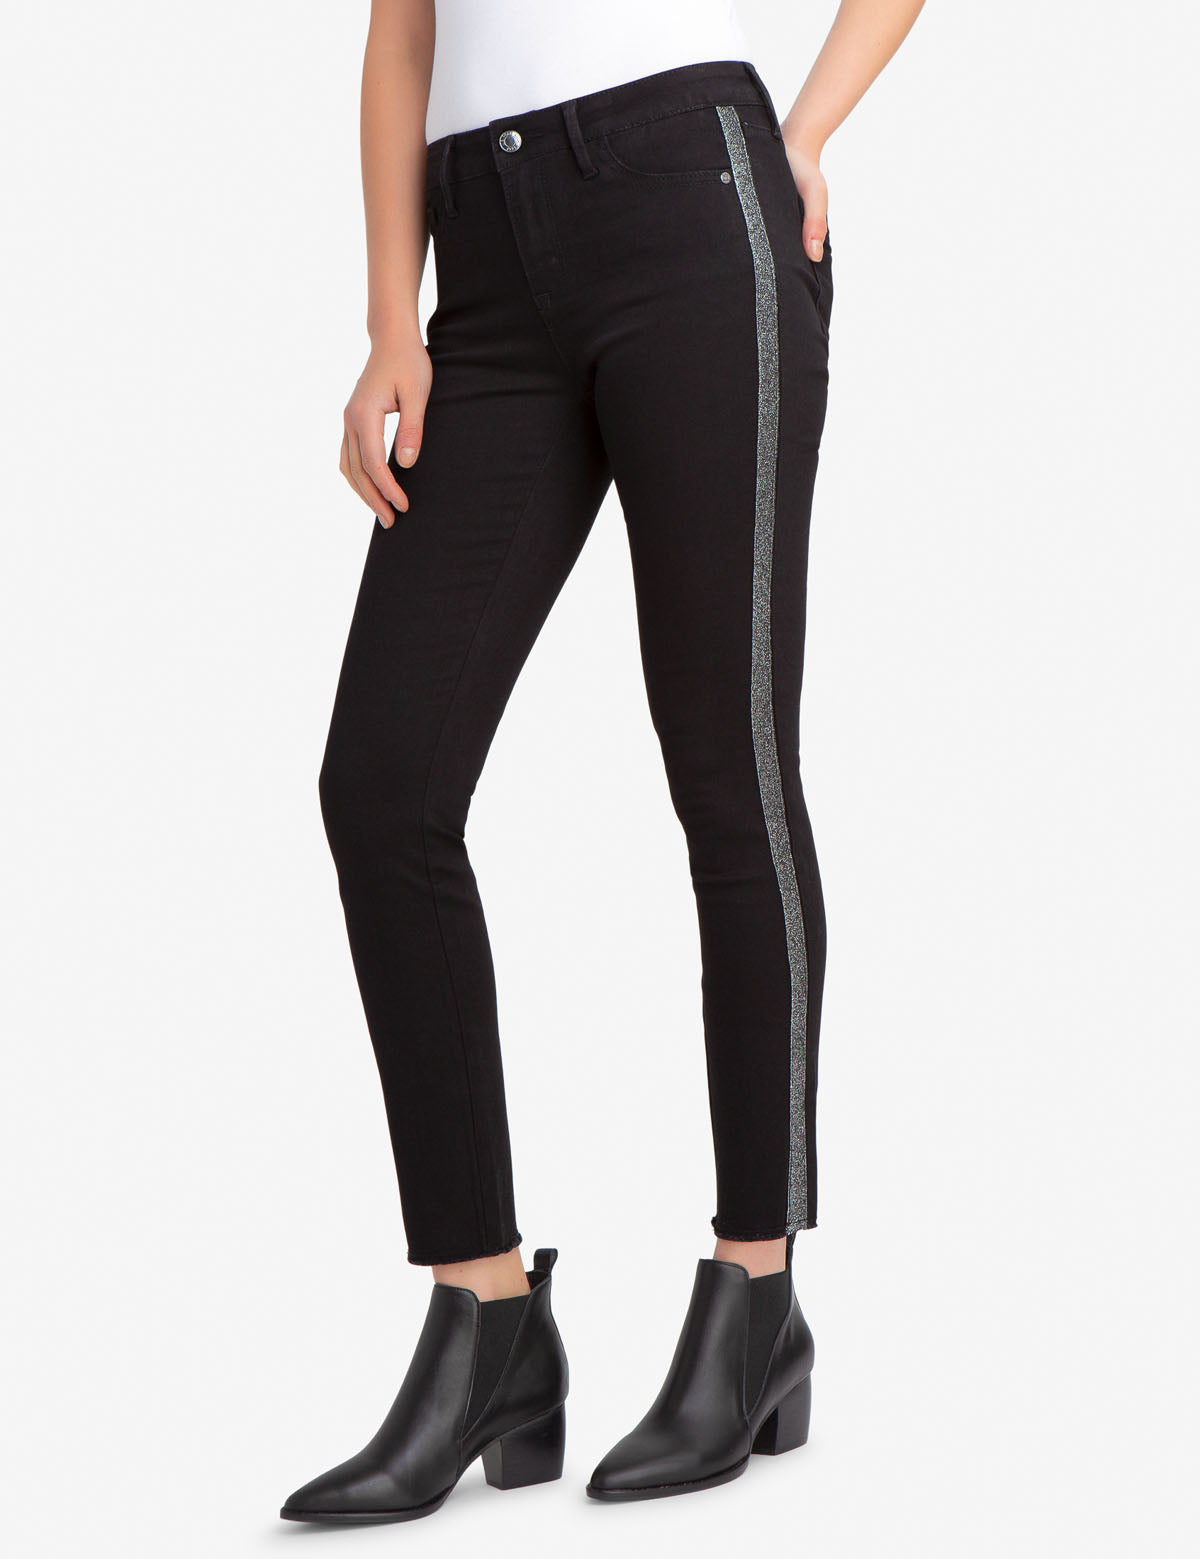 REPREVE® MID RISE SIDE BLING JEGGING